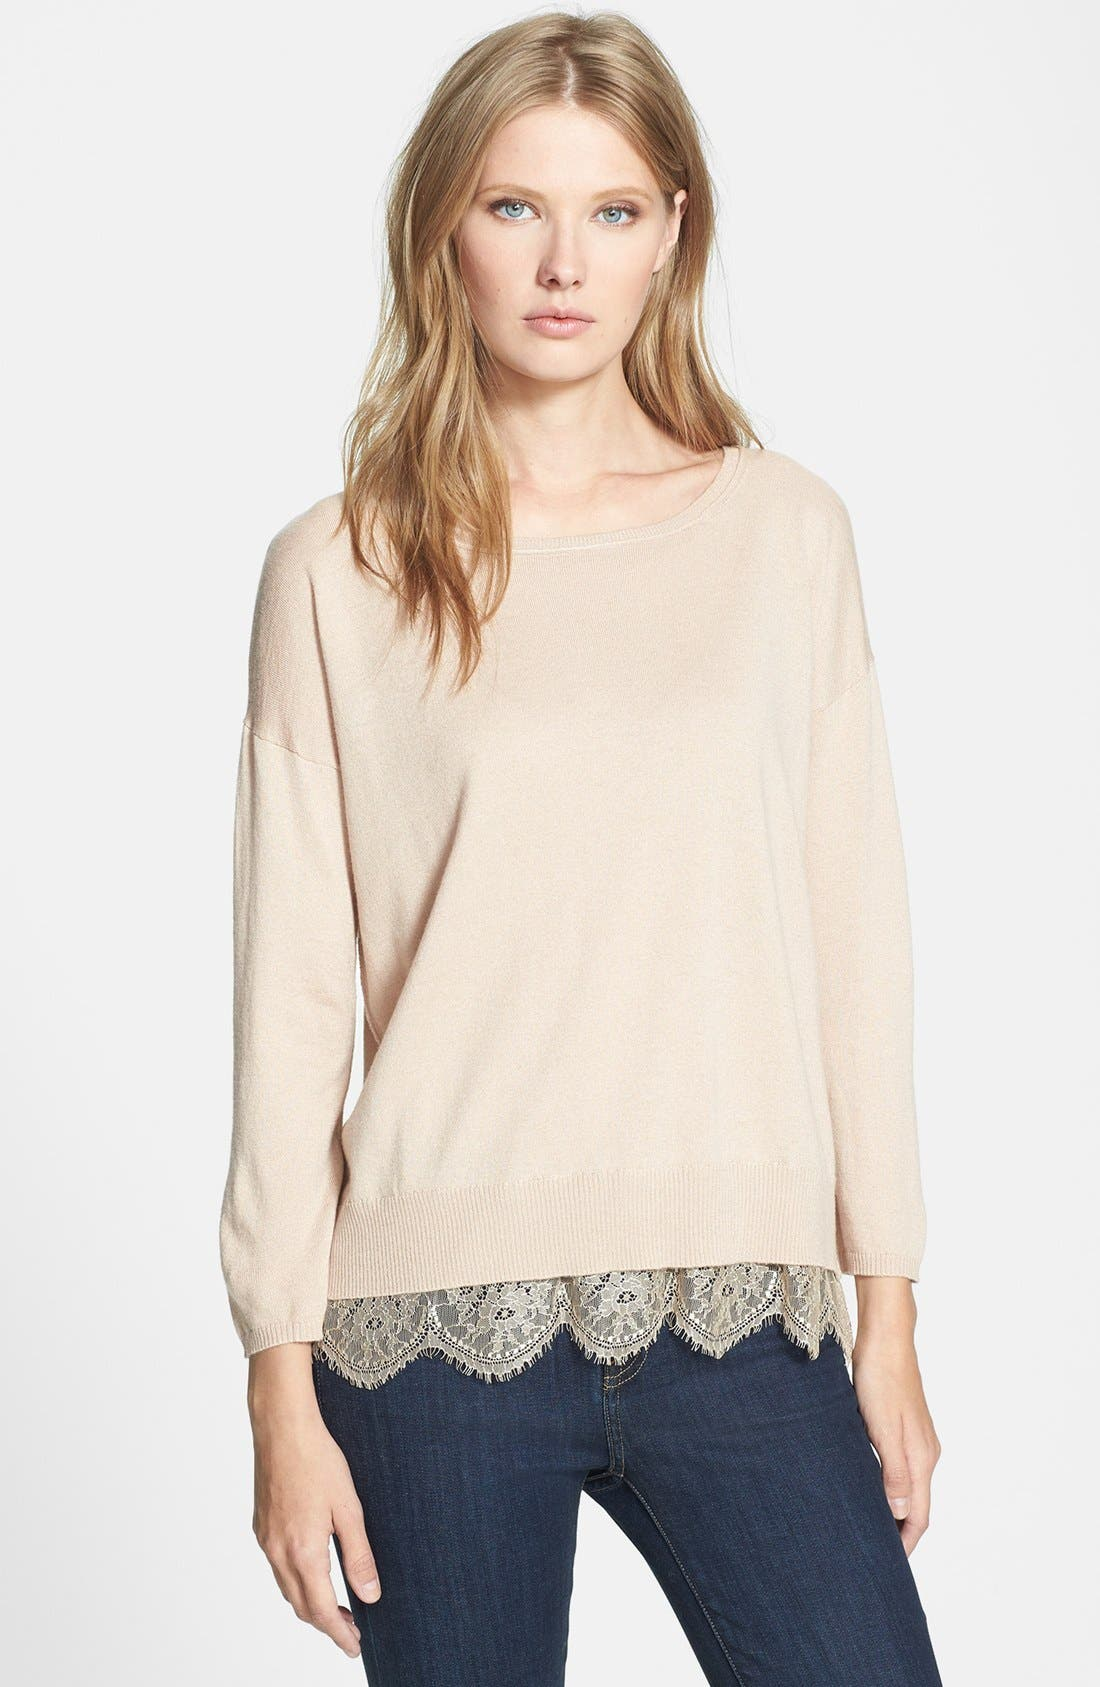 Alternate Image 1 Selected - Joie 'Hilano' Lace Trim Sweater